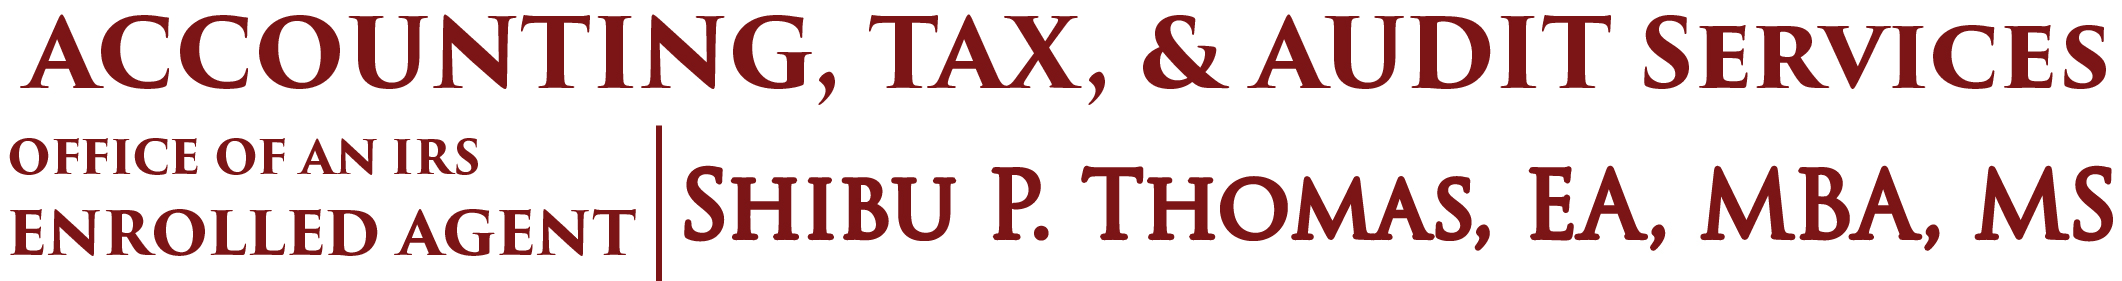 Staten Island, NY Accounting Firm | Tax Preparation Page | Accounting, Tax, & Audit Services Shibu P. Thomas, EA, MBA, MS